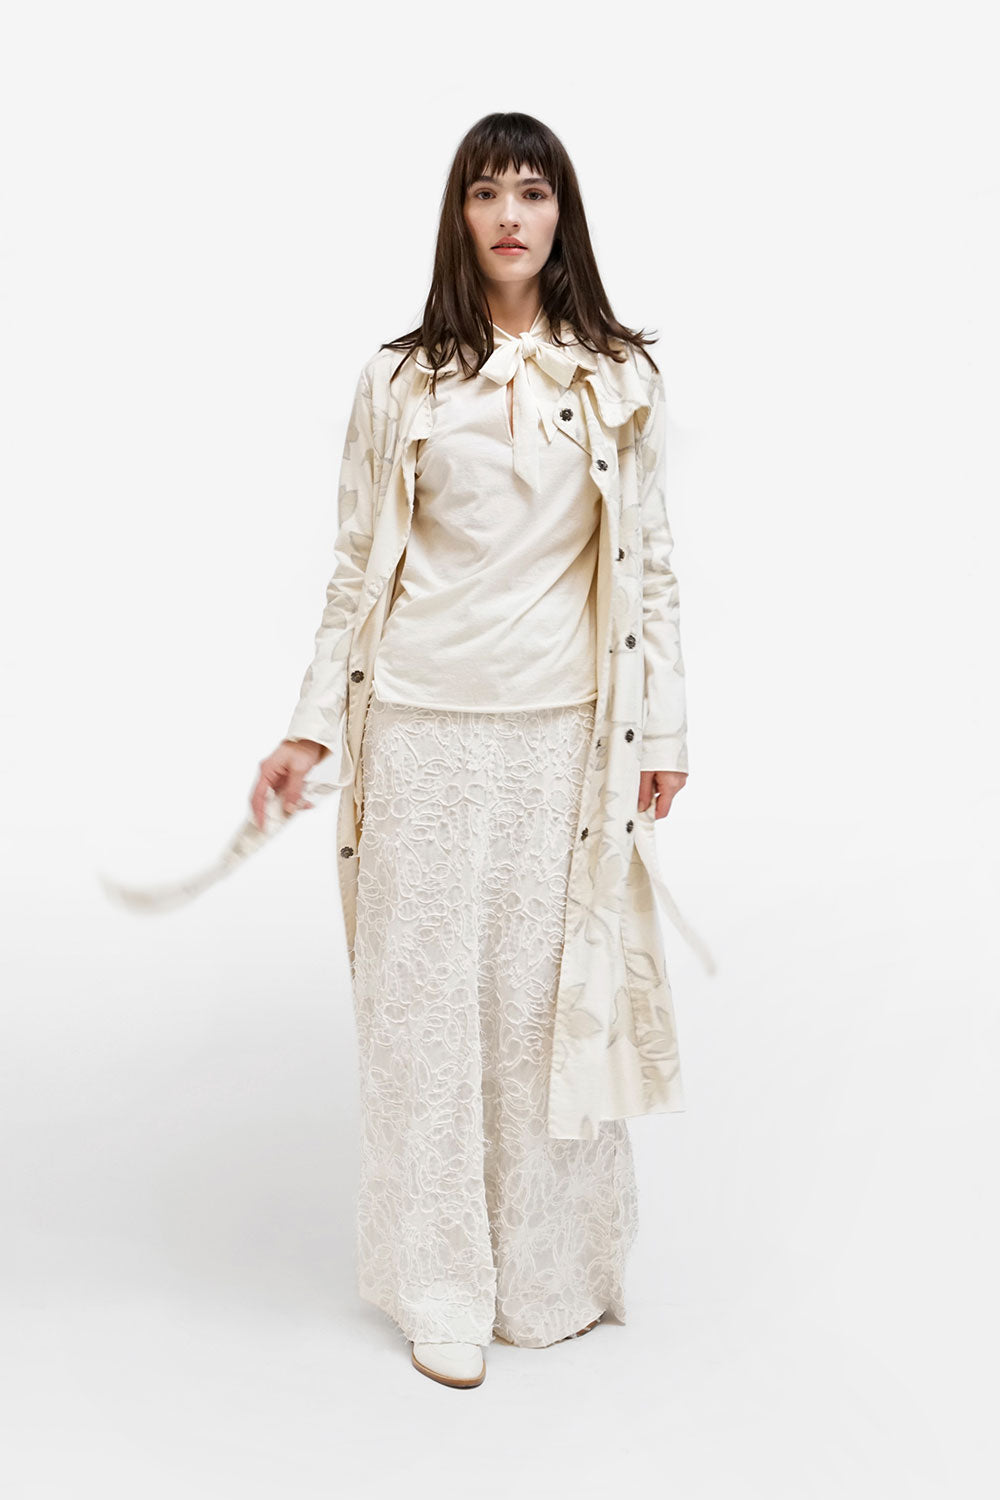 Alabama Chanin Anaise Skirt Women's Organic Cotton Lightweight Long Skirt with Lace Print in Natural Layered on Model